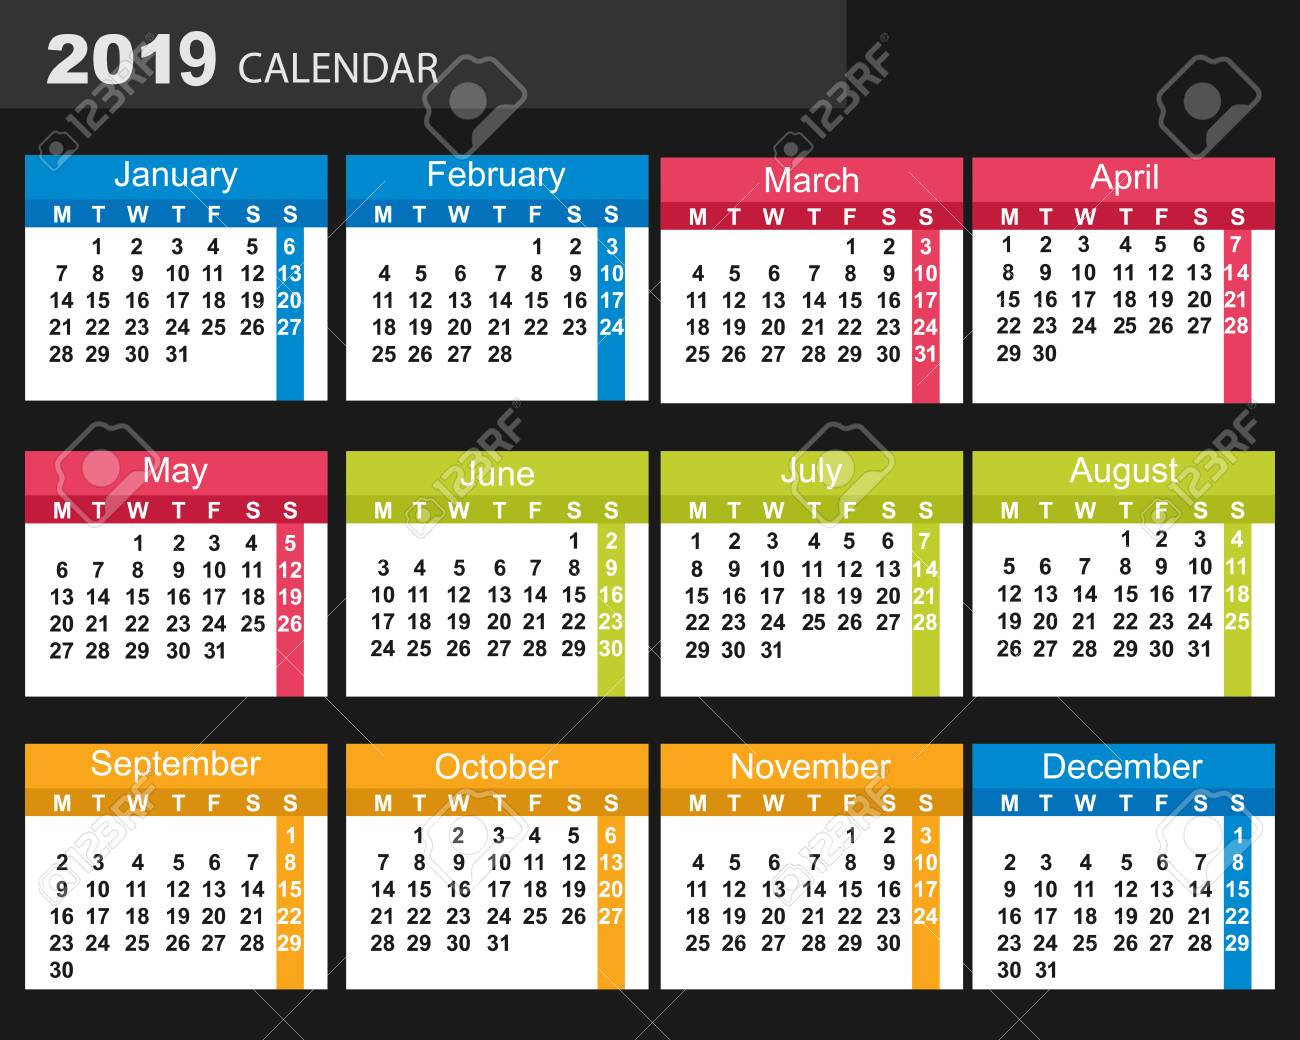 New Year. 2019. Date. For Your Design. Stock Photo